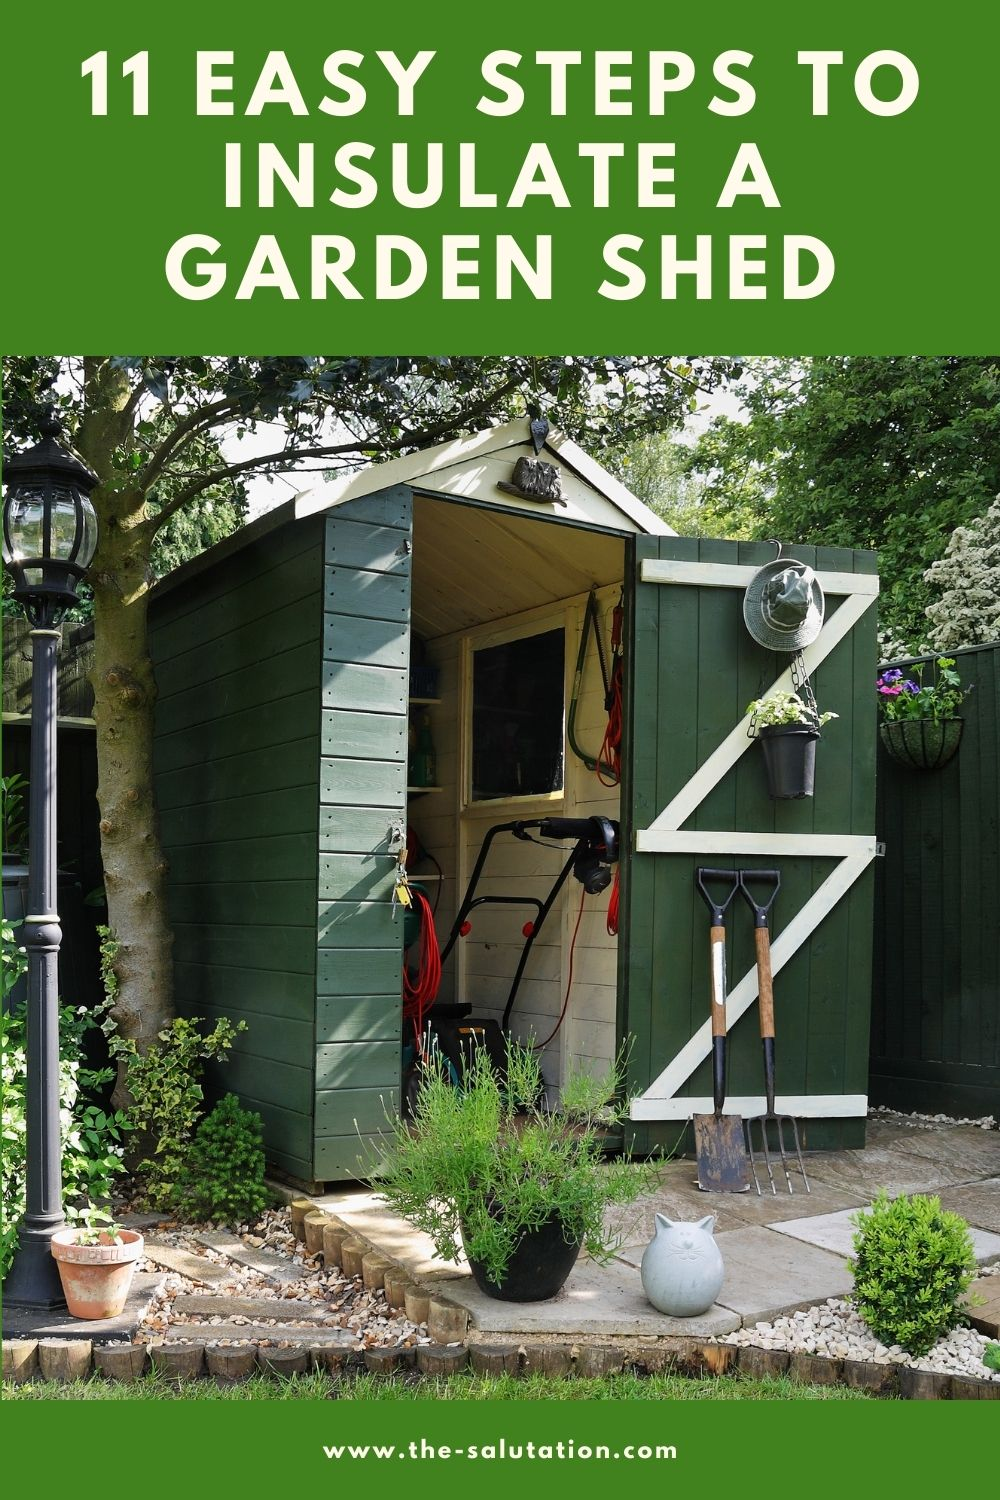 11 Easy Steps to Insulate a Garden Shed 2